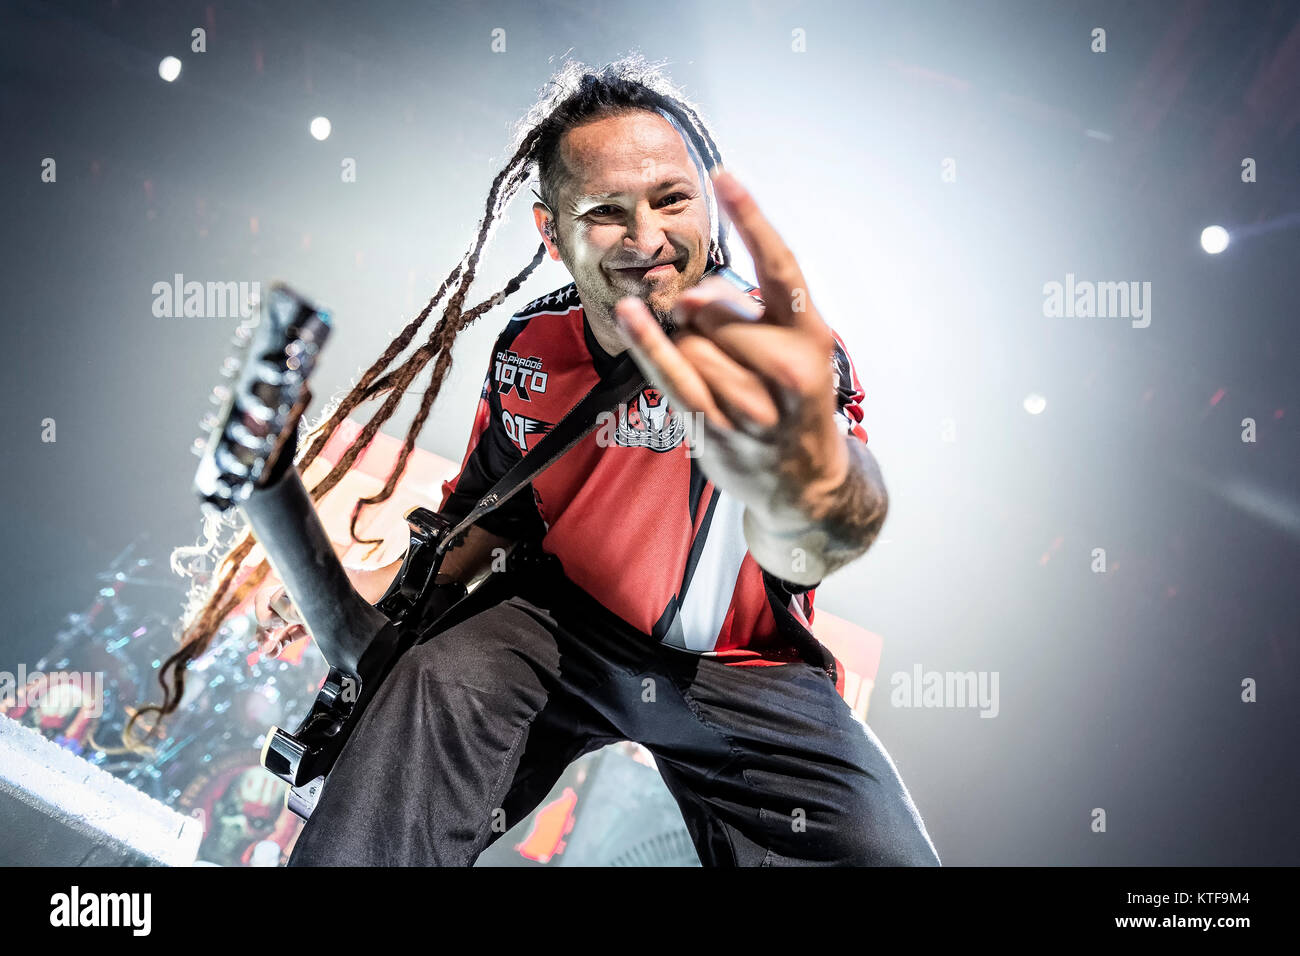 Five Finger Death Punch The American Heavy Band Performs A Live Concert At Spektrum In Oslo Here Musician Zoltan Bathory On Guitar Is Seen Stage